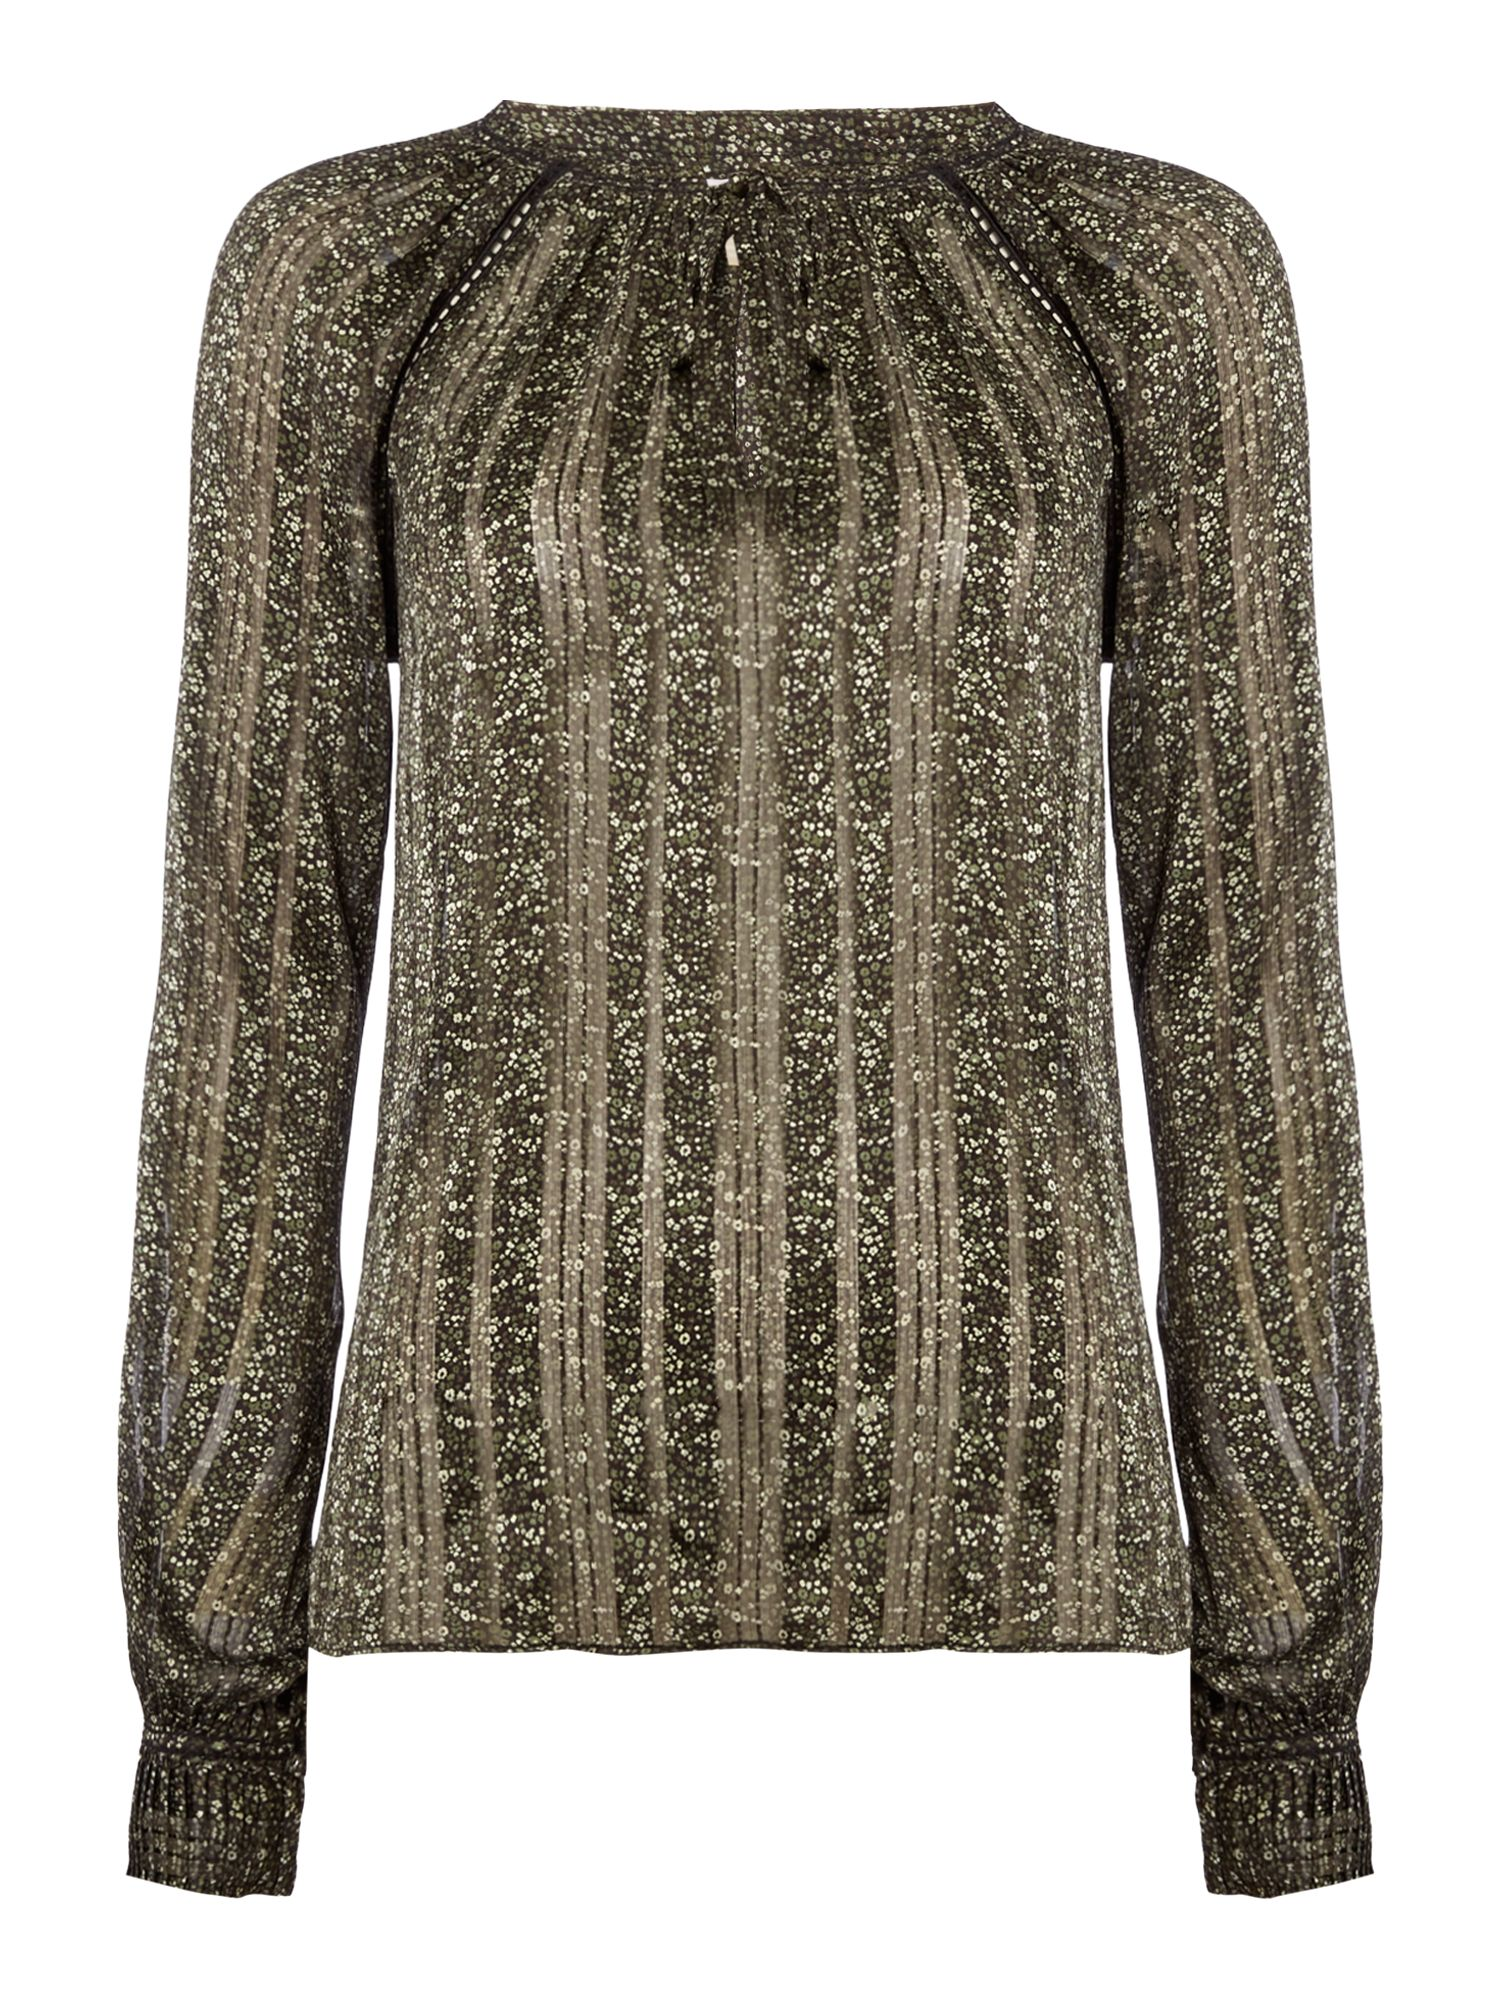 Michael Kors Long sleeve pleat top, Dark Green